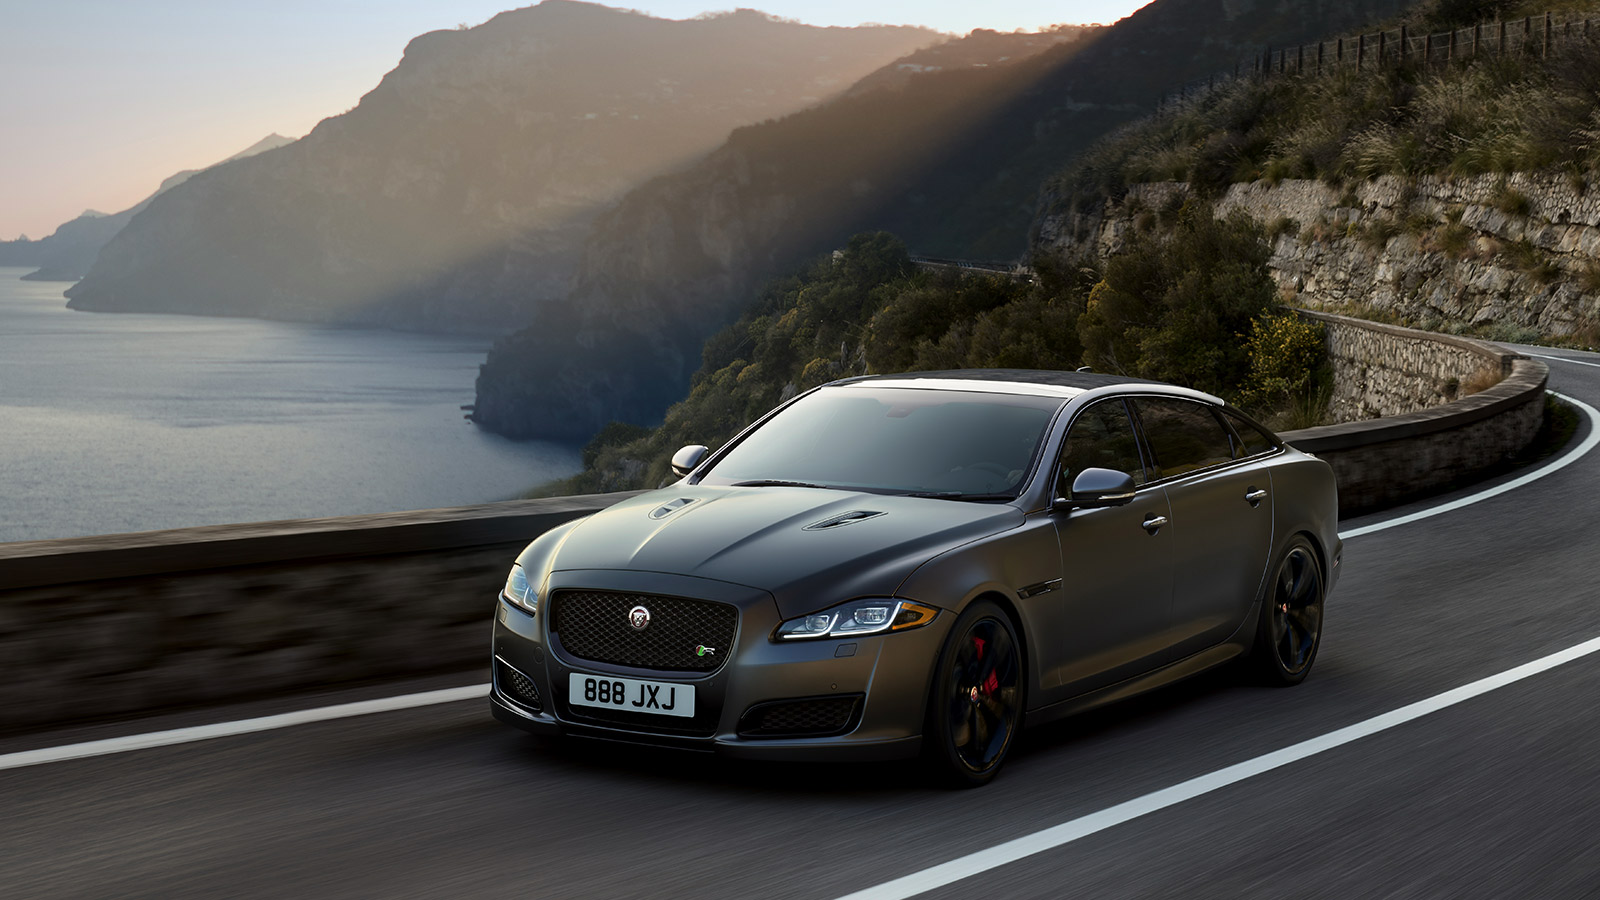 Grey Jaguar driving on-road by the sea.